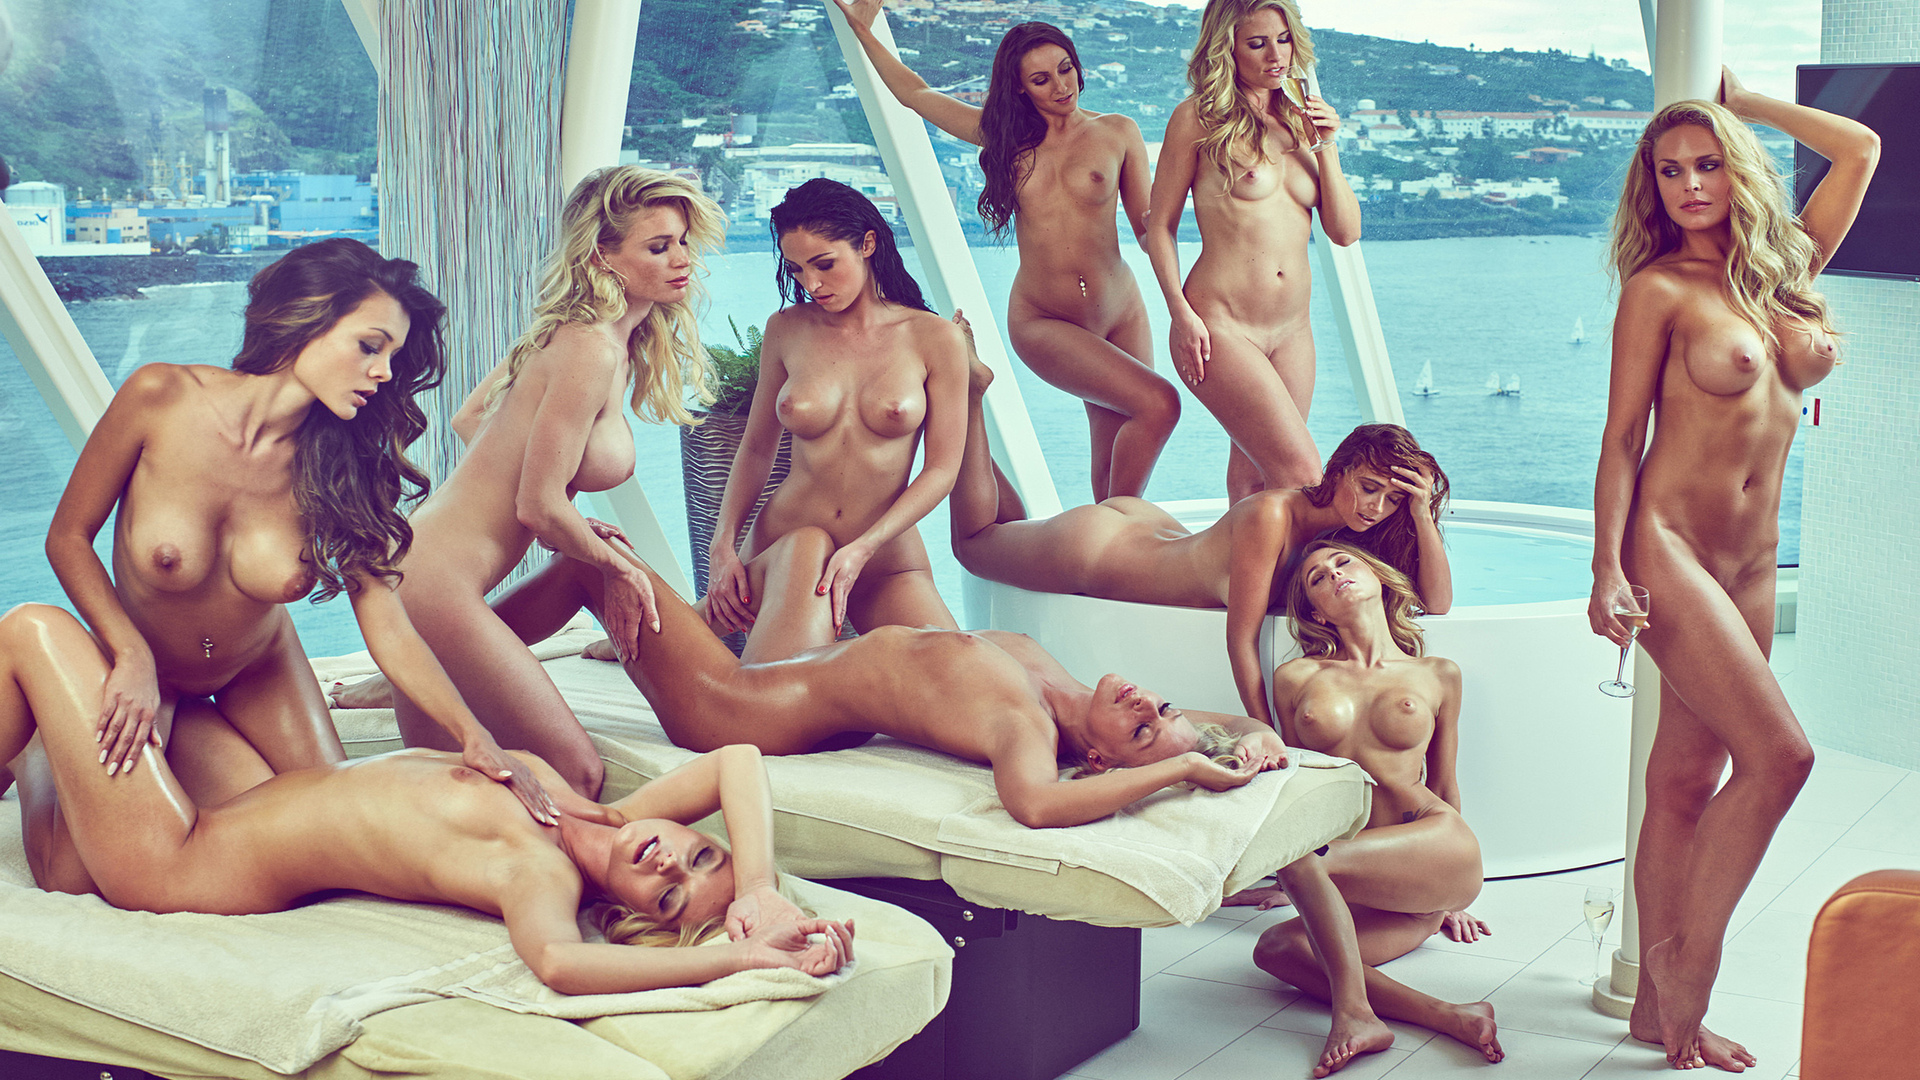 Bad Ass Nude Playboy Models Going Wild